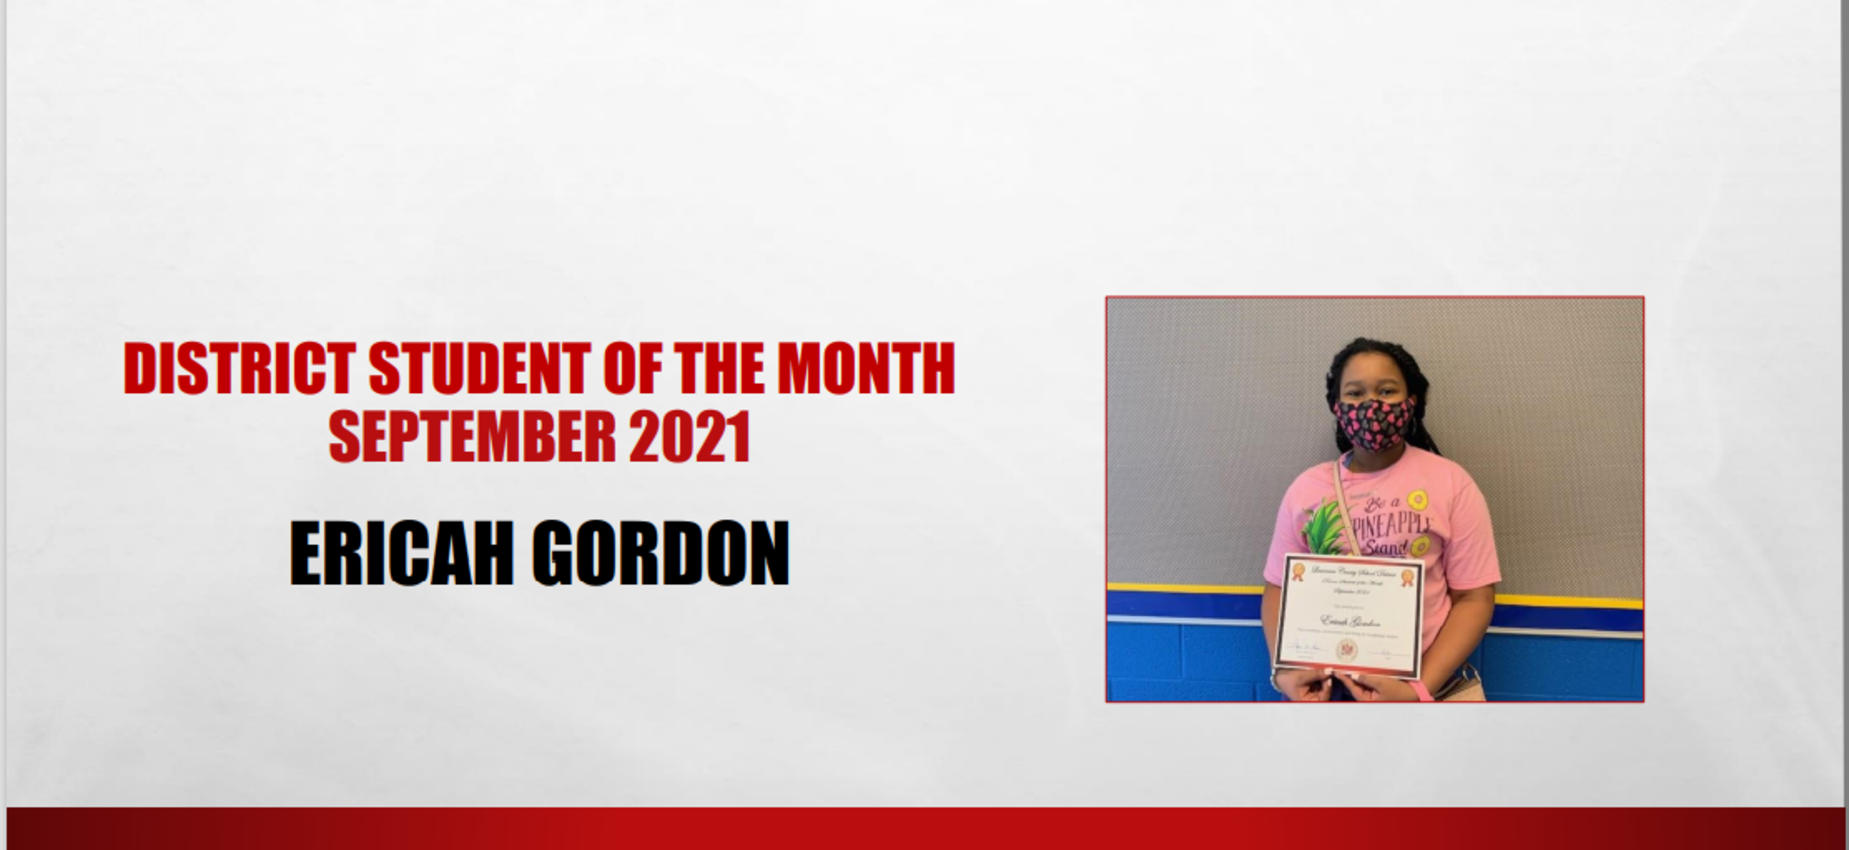 September 2021 District Student of the Month Ericah Gordon